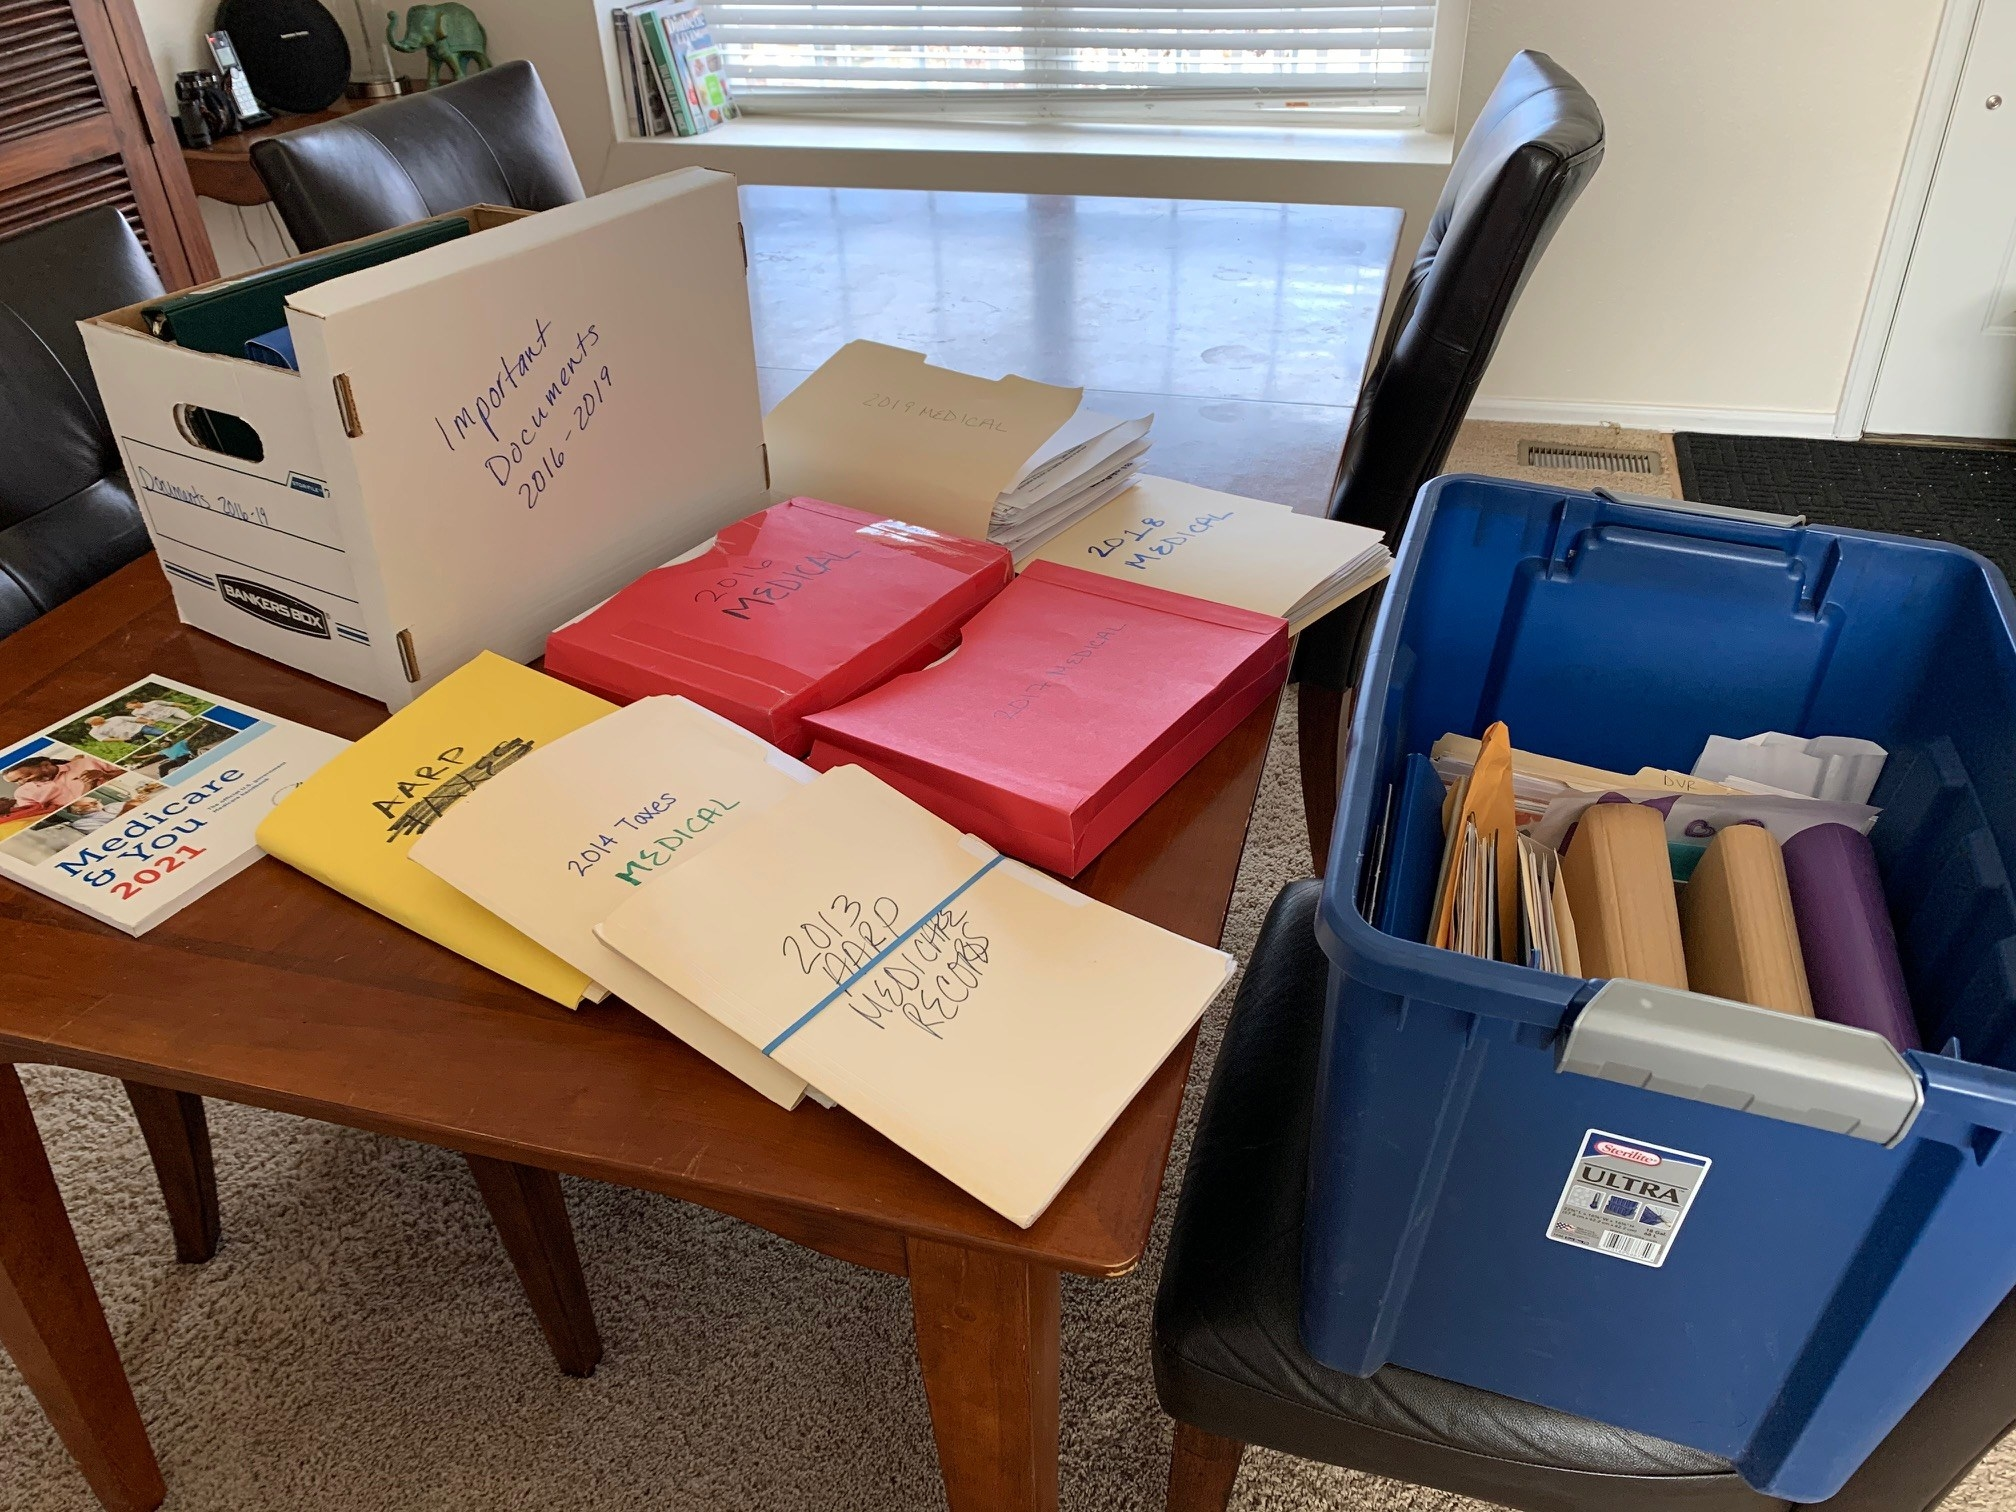 Piles of thick folders filled with medical records and labeled by year sit on a coffee table